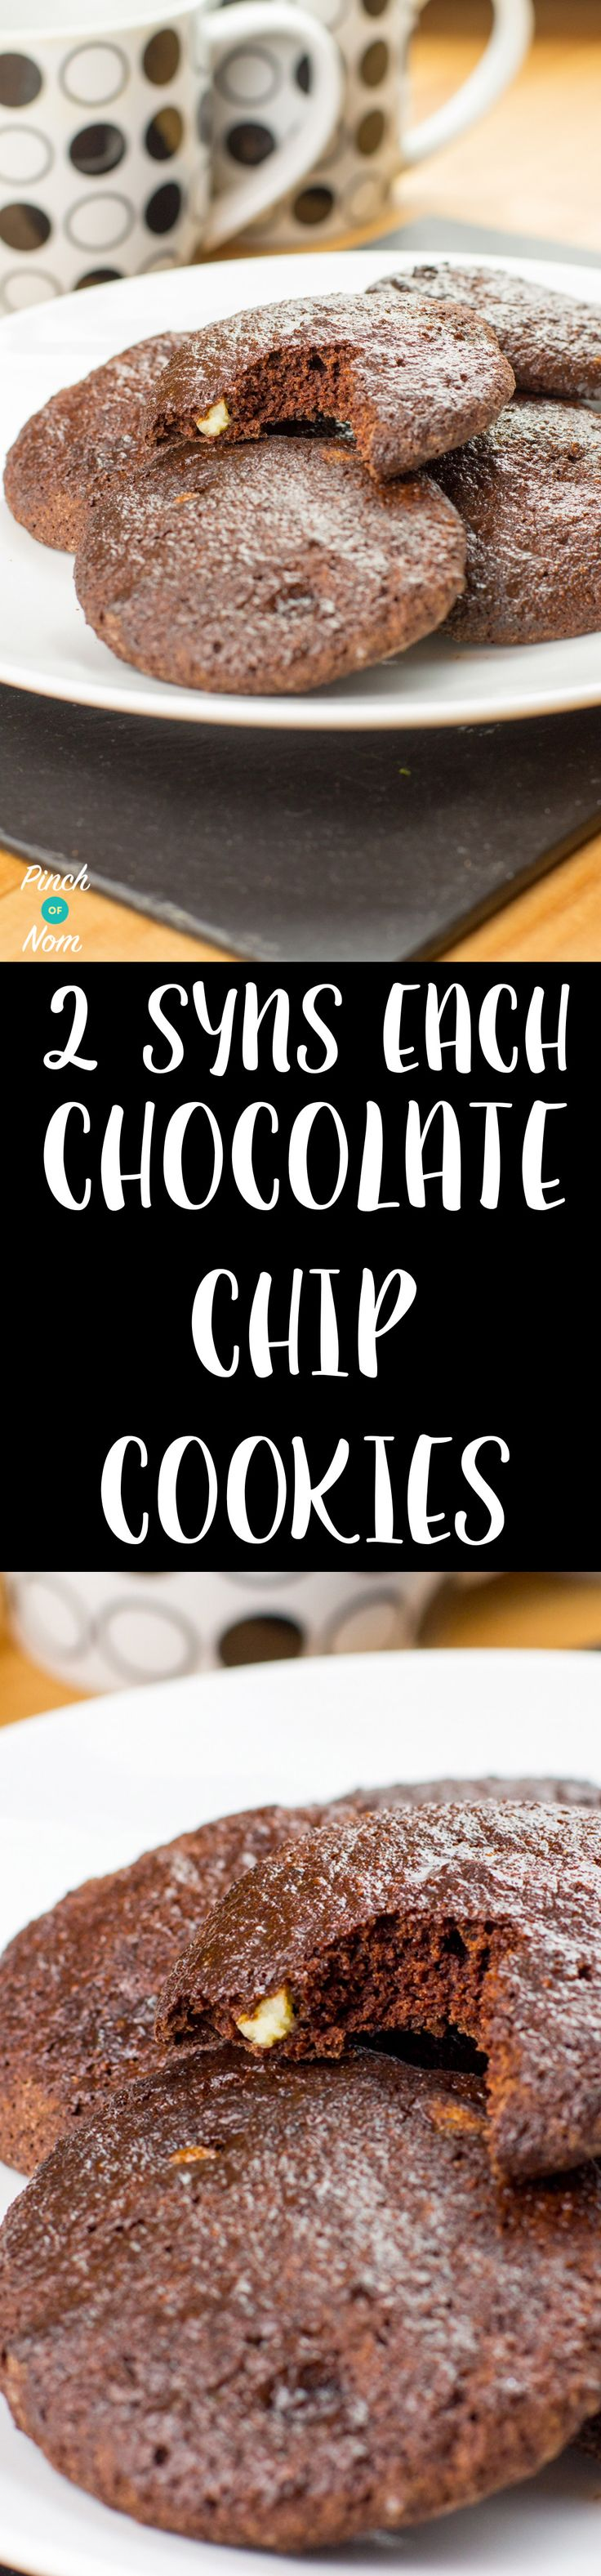 2 Syn Double Choc Chip Cookies | Slimming World | pinnchofnom.com                                                                                                                                                                                 More